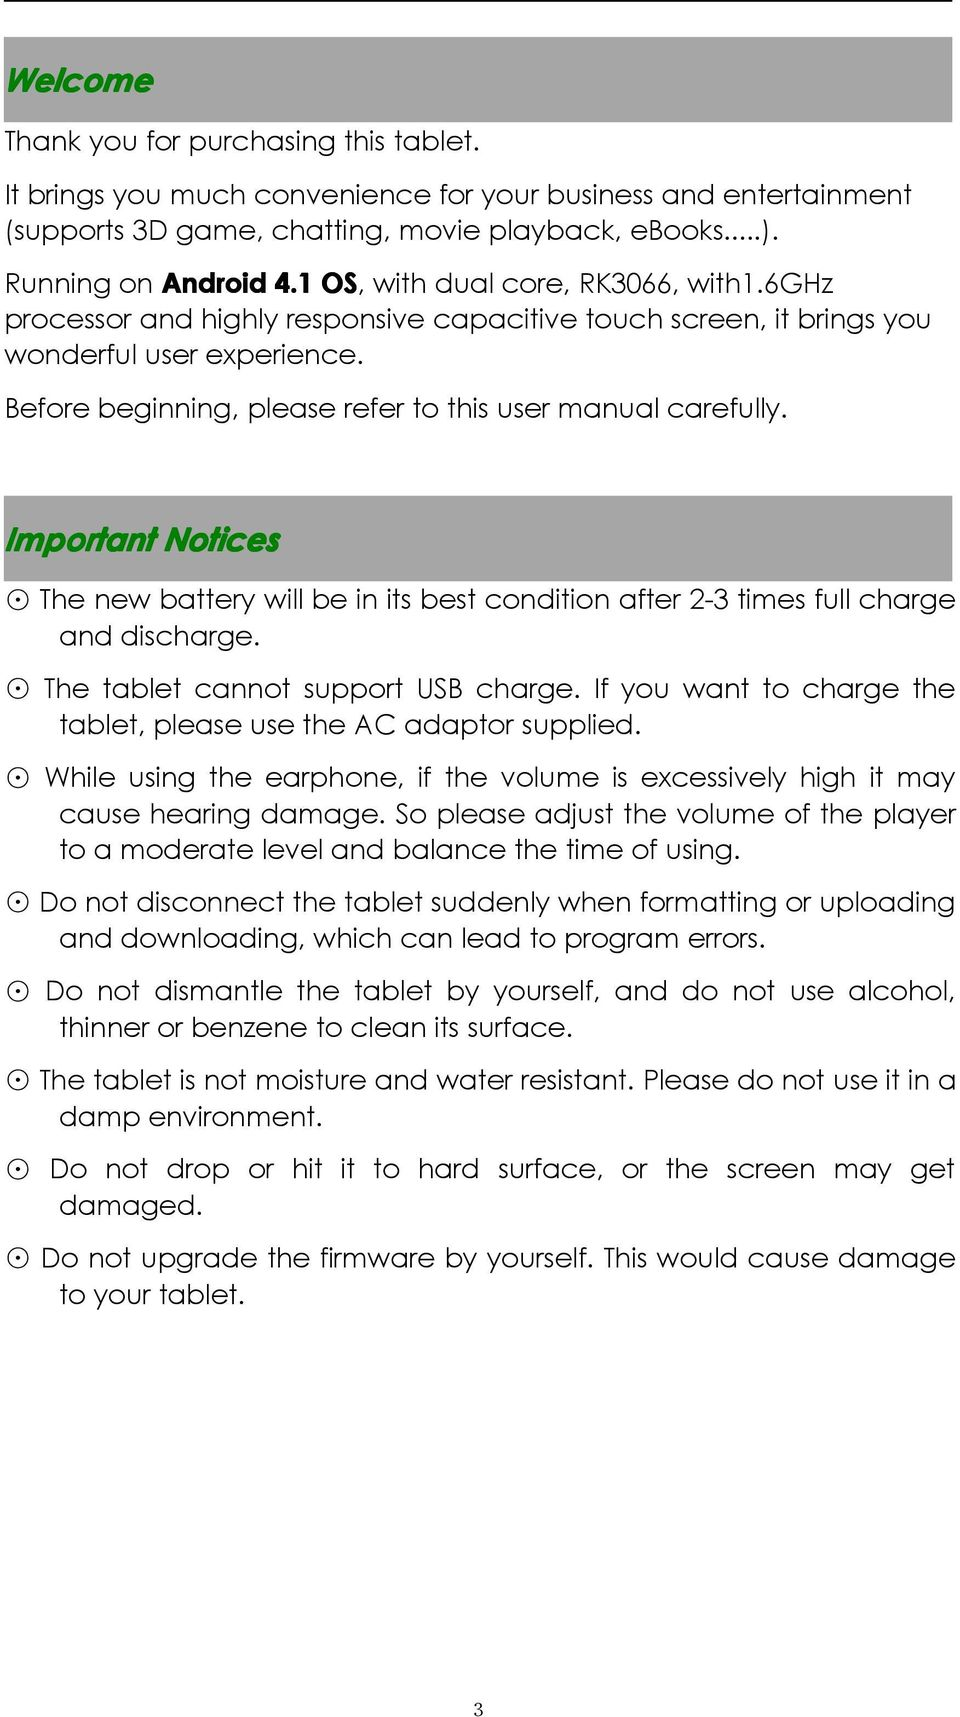 Important Notices The new battery will be in its best condition after 2-3 times full charge and discharge. The tablet cannot support USB charge.